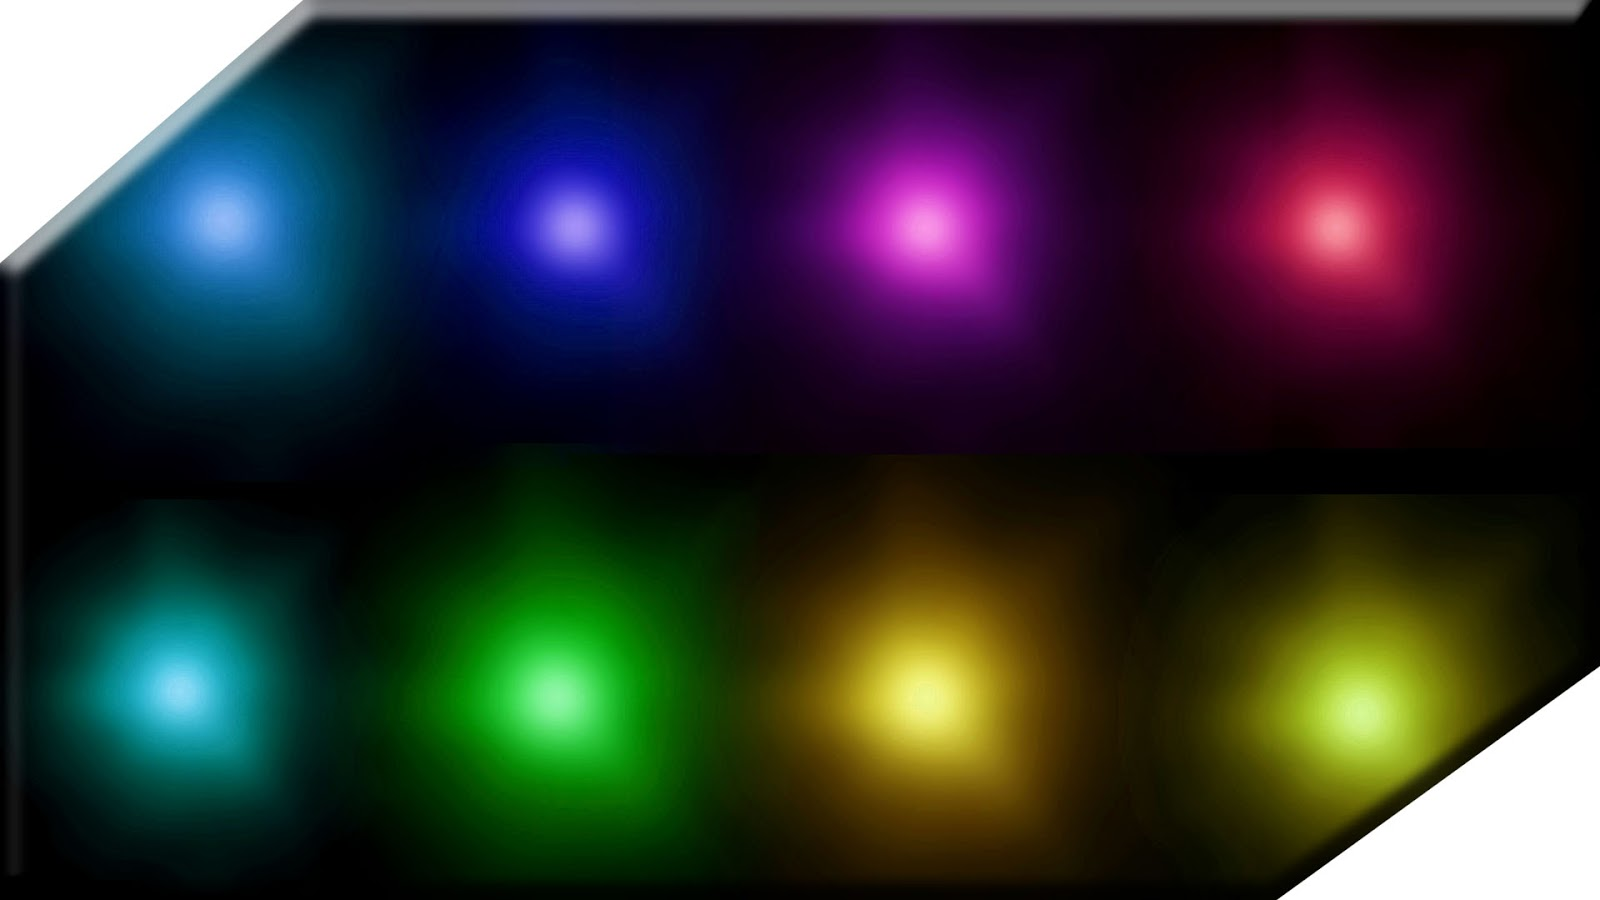 Download Lights For Editing Free Light Pack - Sikandar Creation